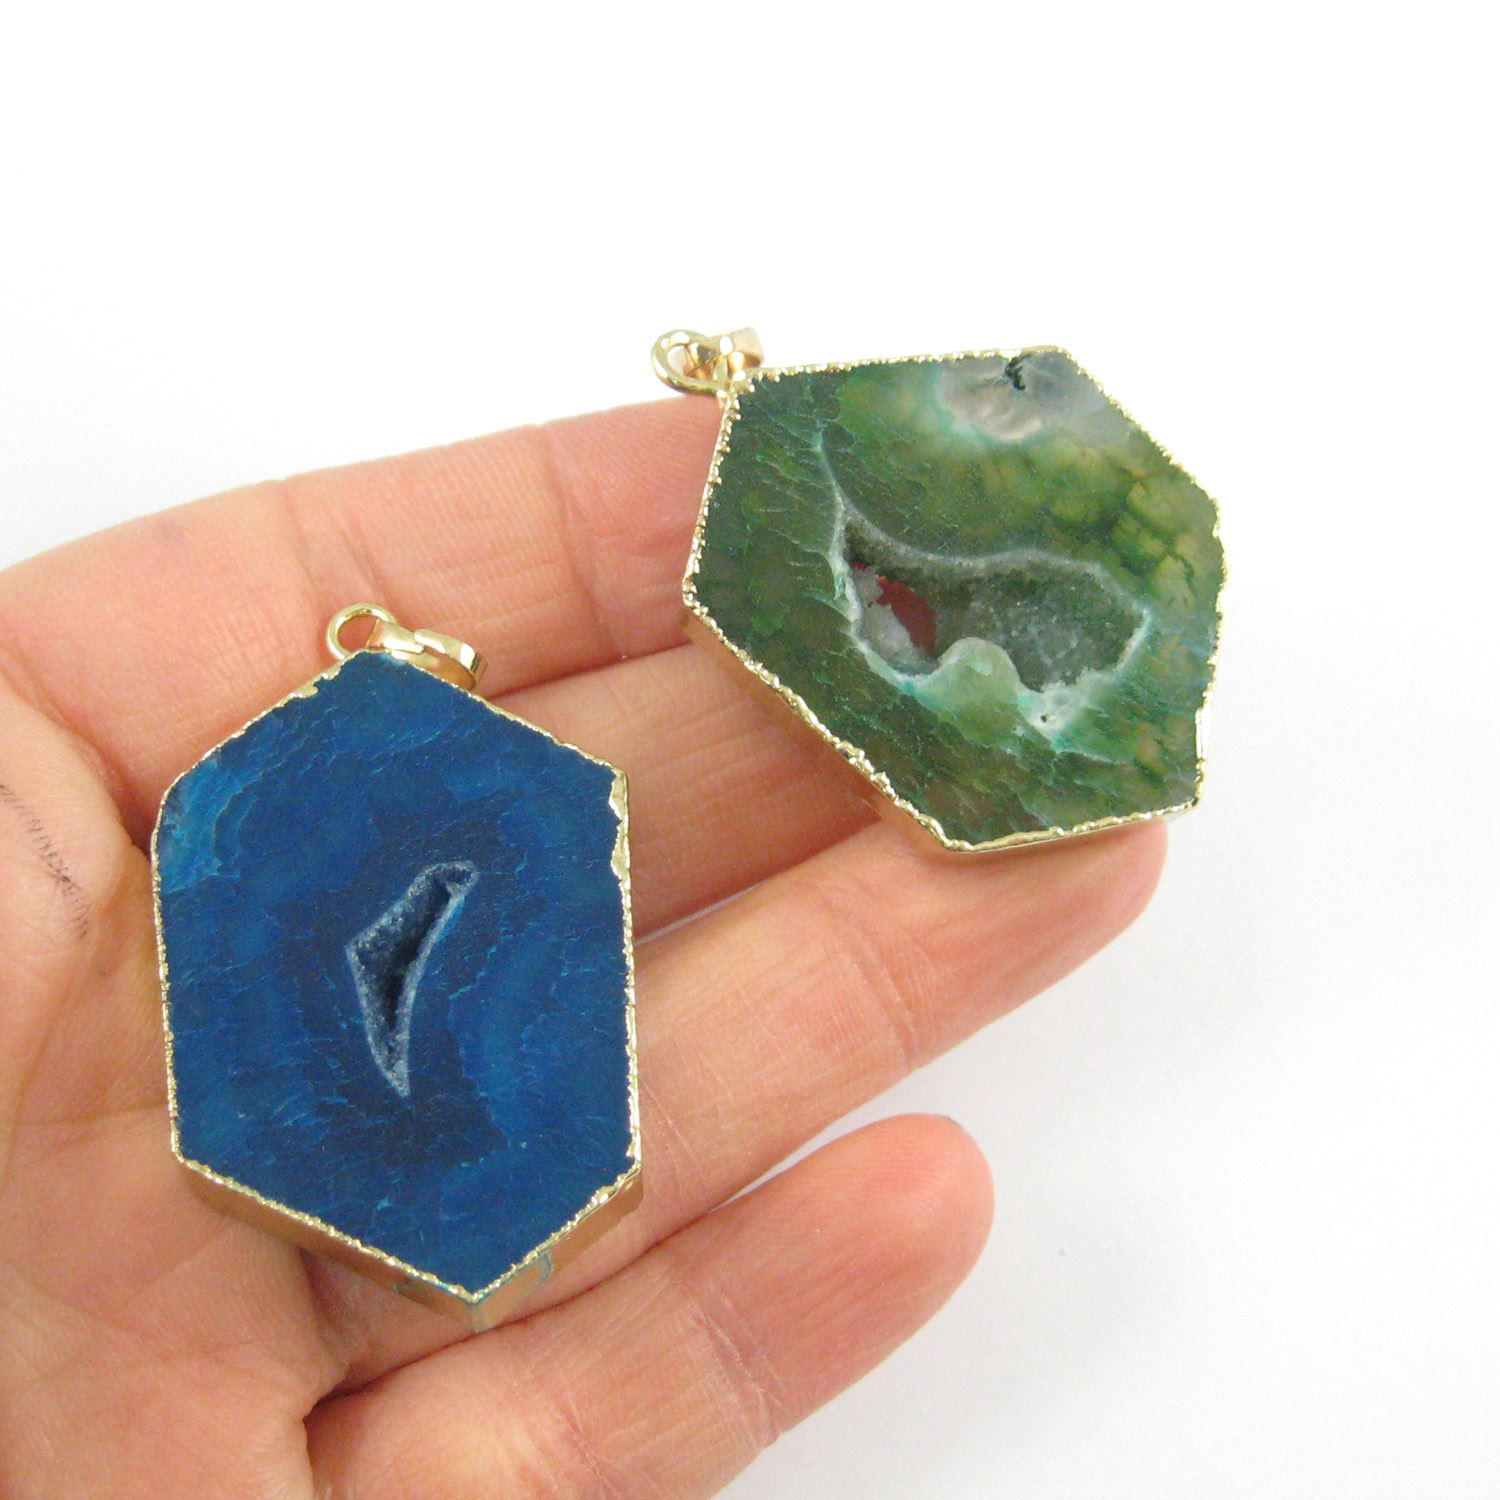 Druzy Geode Hexagon Pendant, Geode Window Agate- Natural Green Agate 45mm